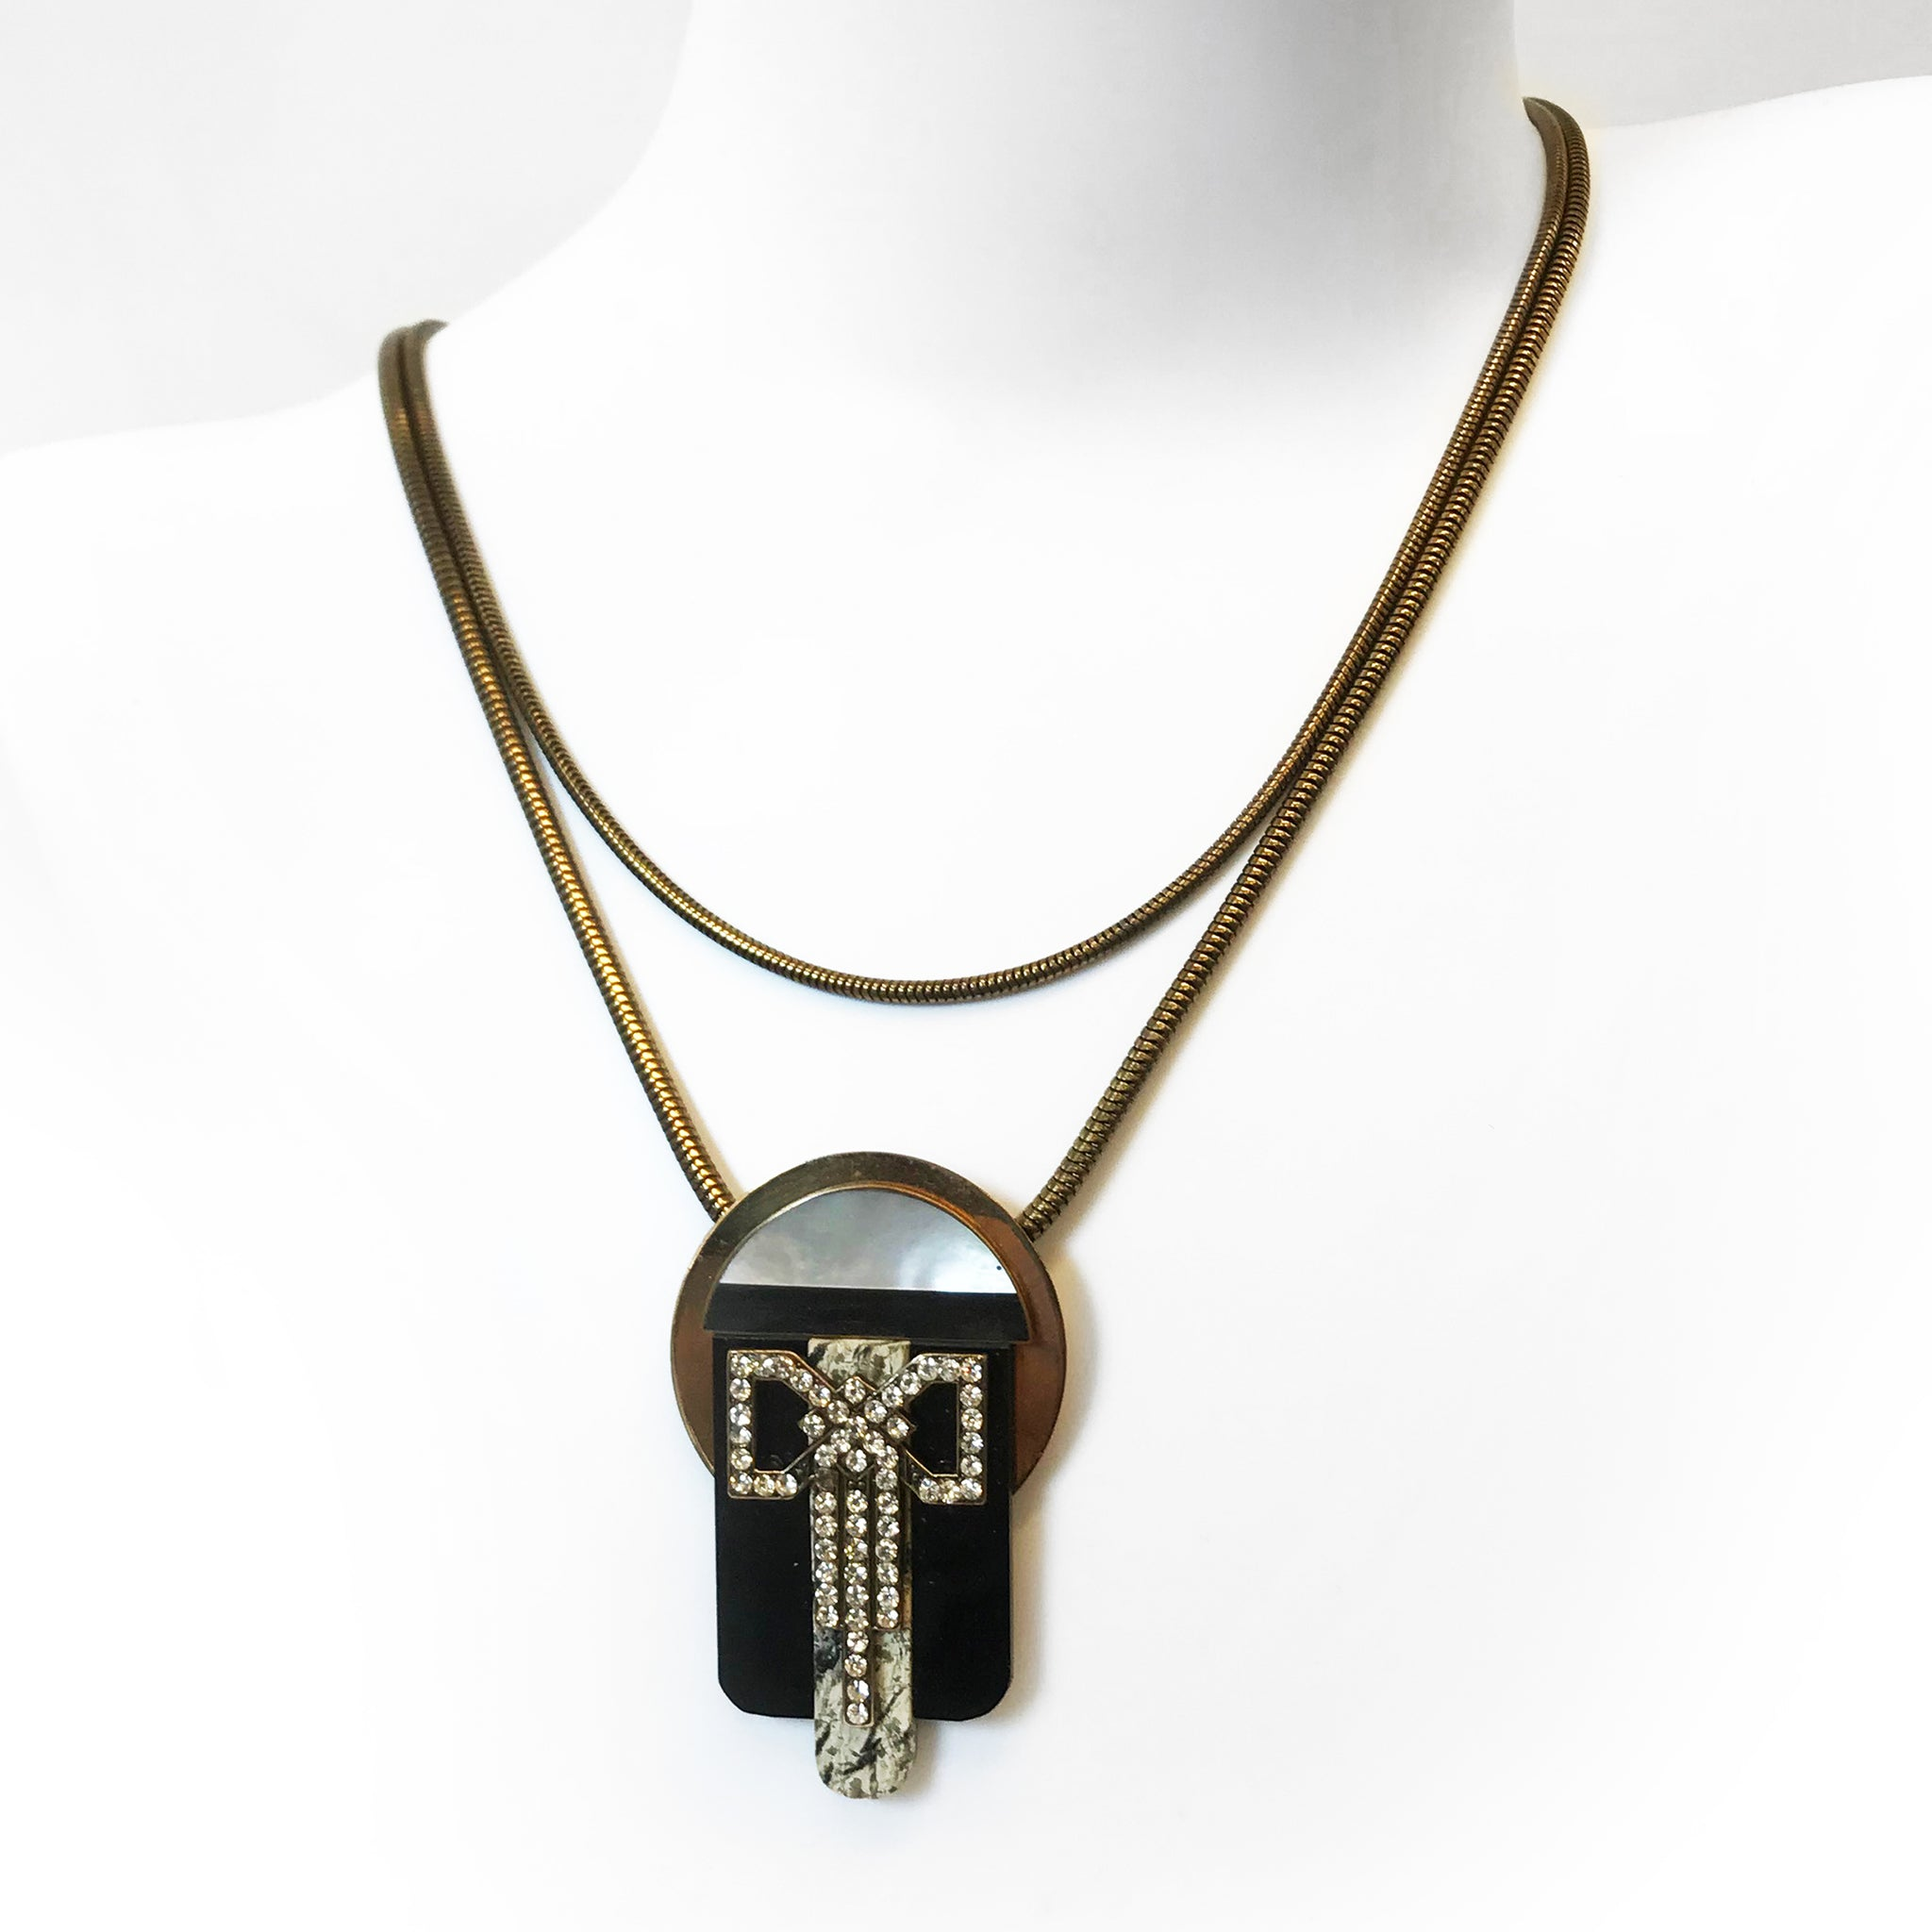 Ermani Bulatti Bakelite & Paste Necklace